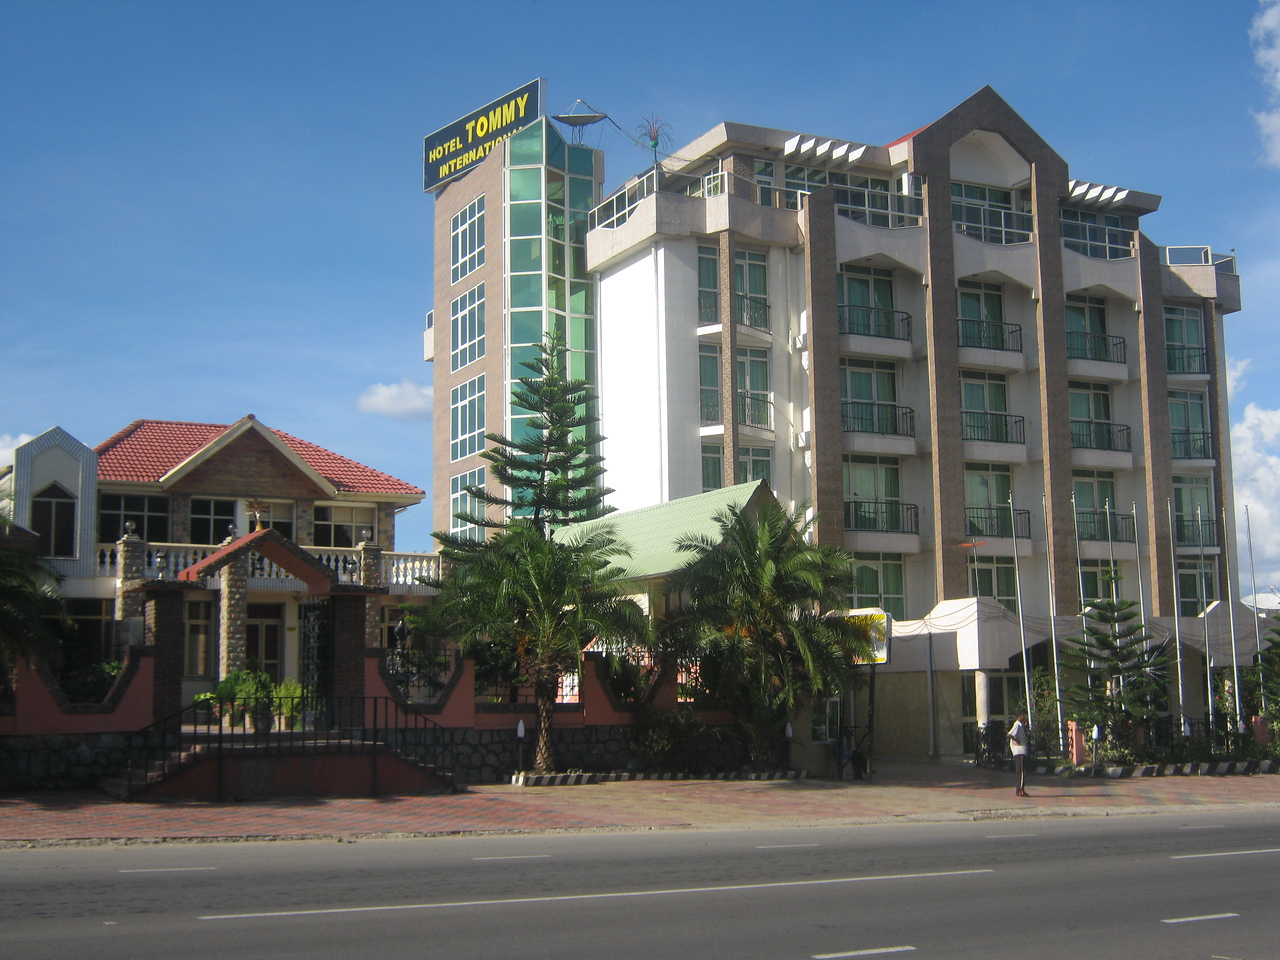 The local area - the Tommy International Hotel.